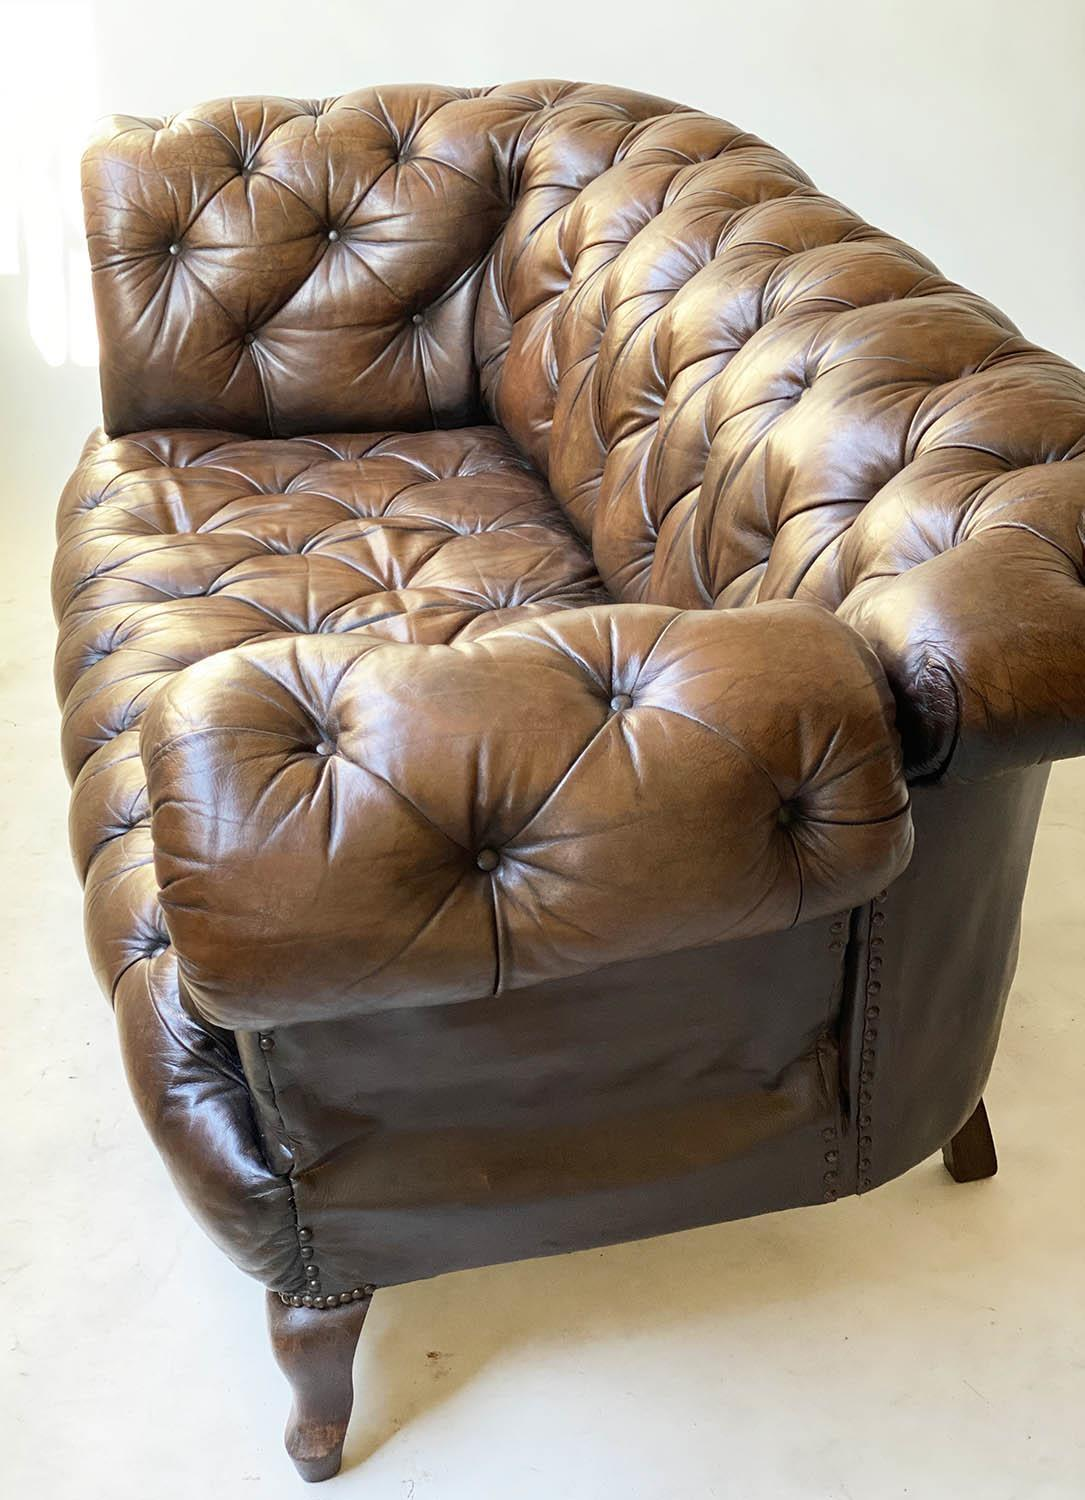 CHESTERFIELD SOFA, early 20th century Edwardian aged and faded brown leather with horsehair buttoned - Image 9 of 10